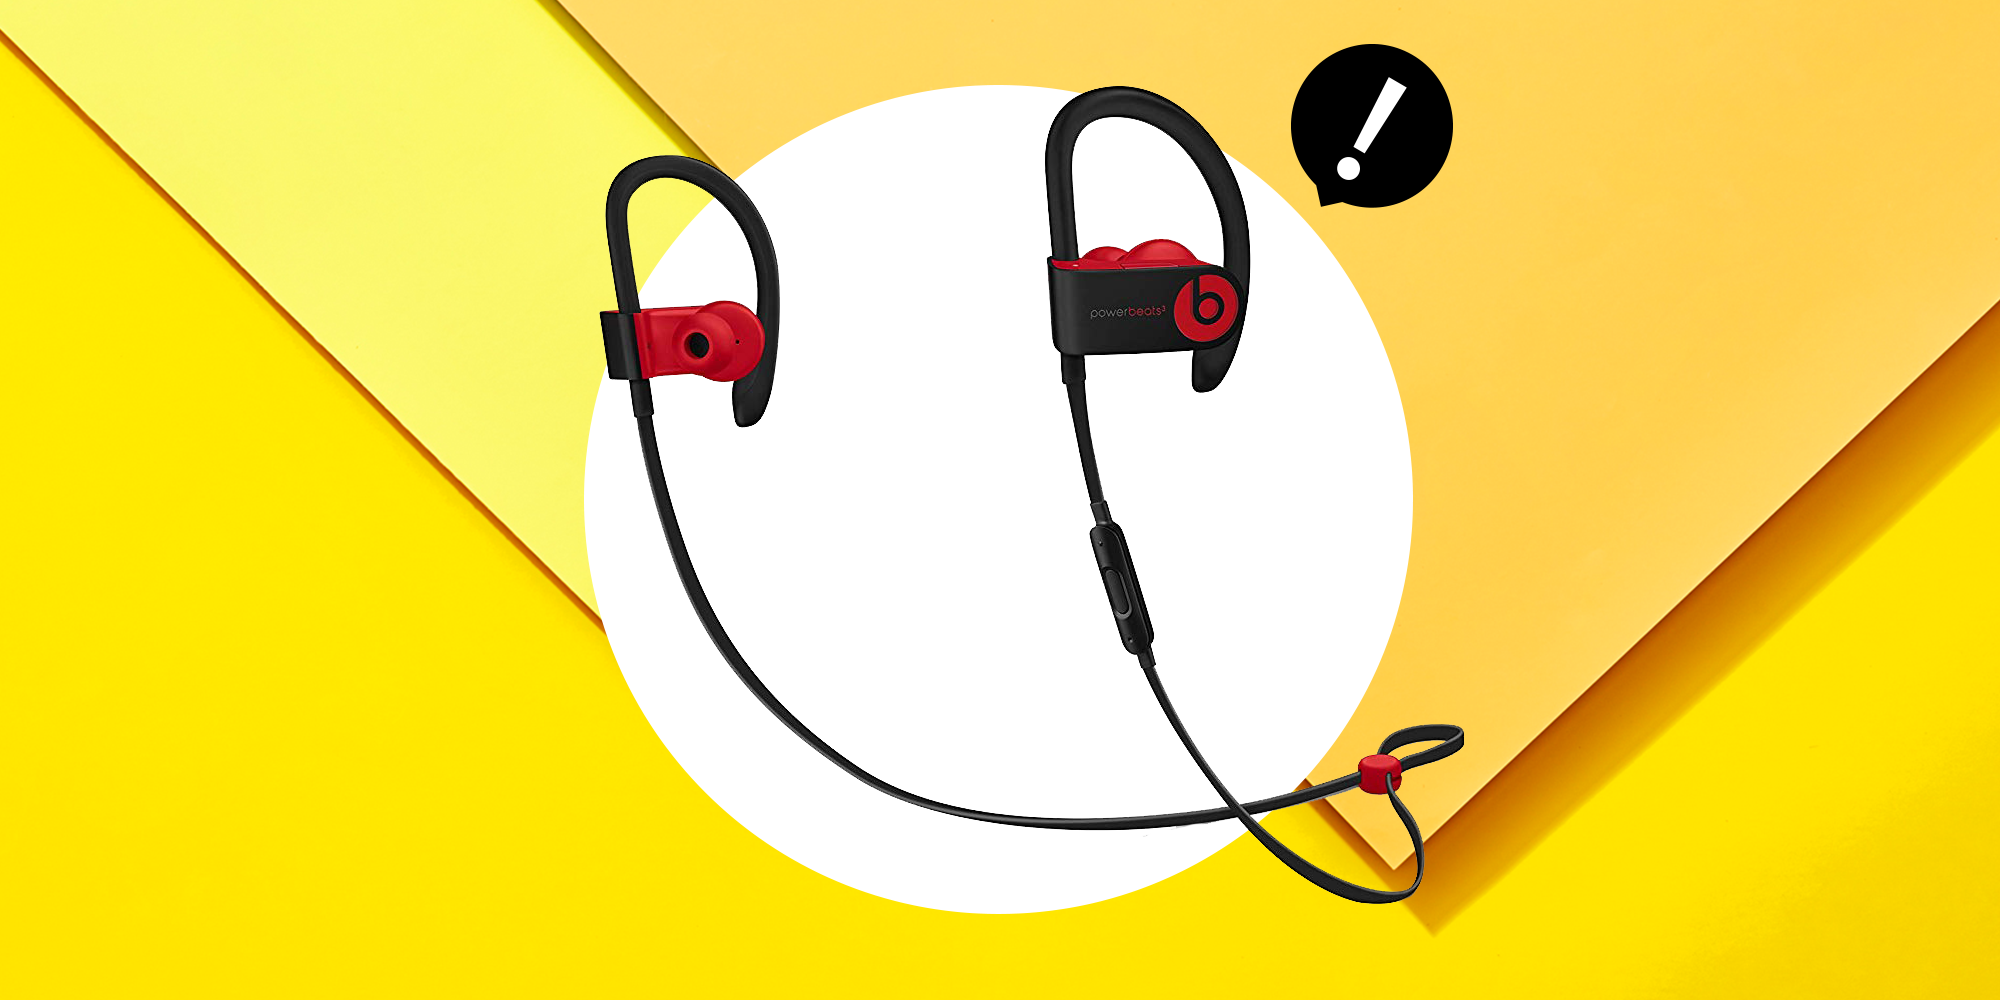 Beats Powerbeats 3 Headphones Are On Sale For $120 Off At Their Lowest Price Ever